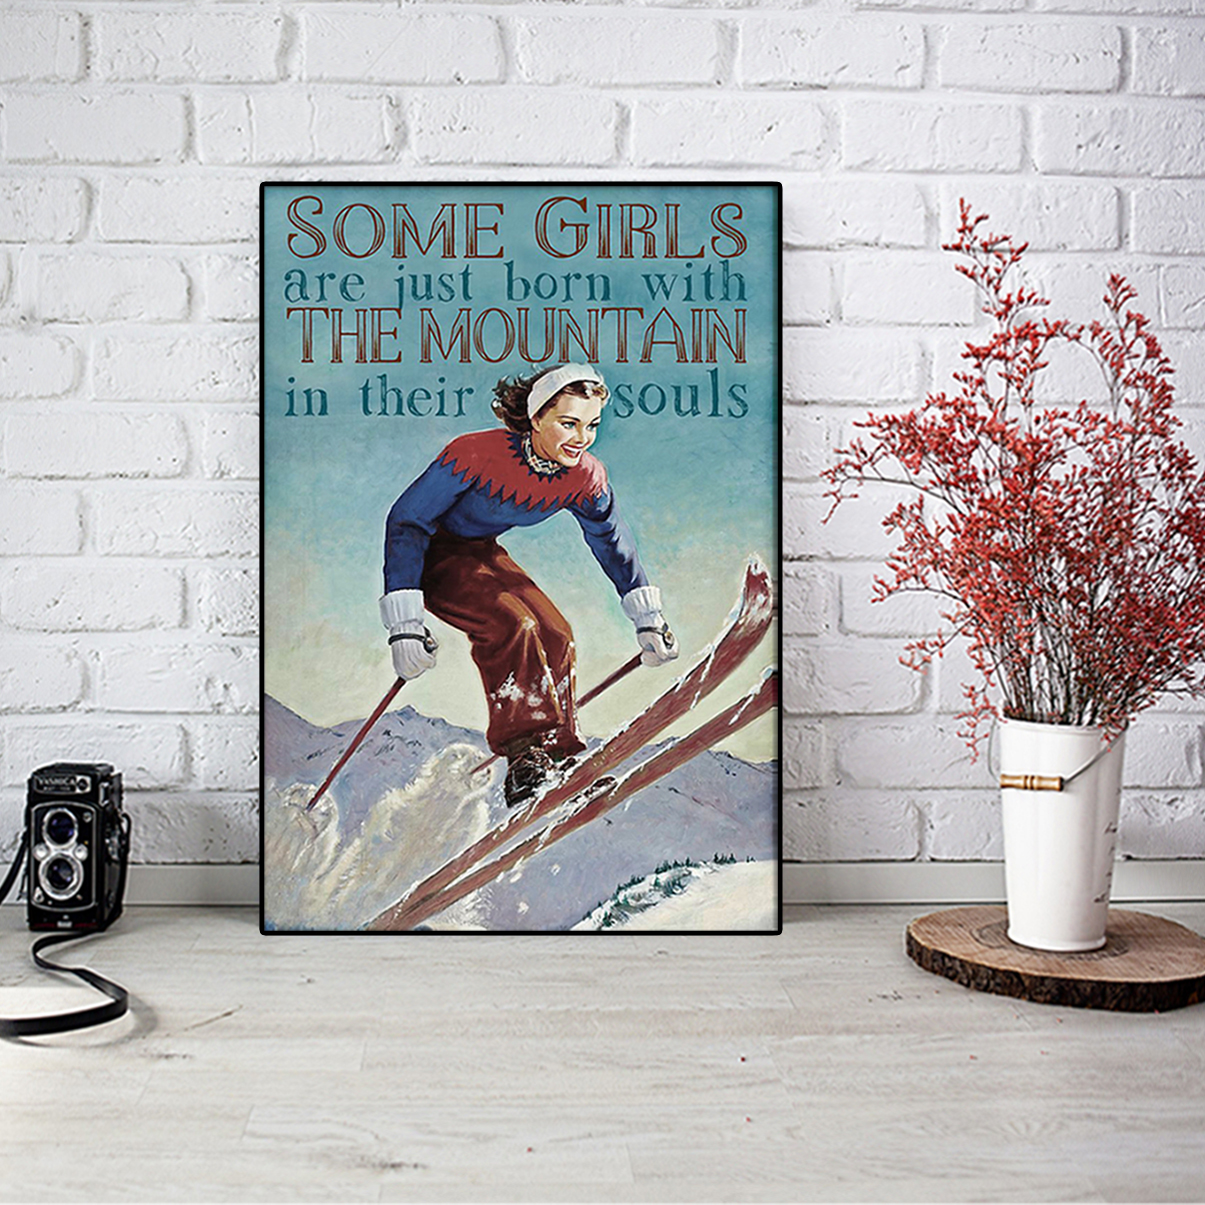 Skiing some girls are just born with the mountain in their souls poster A1